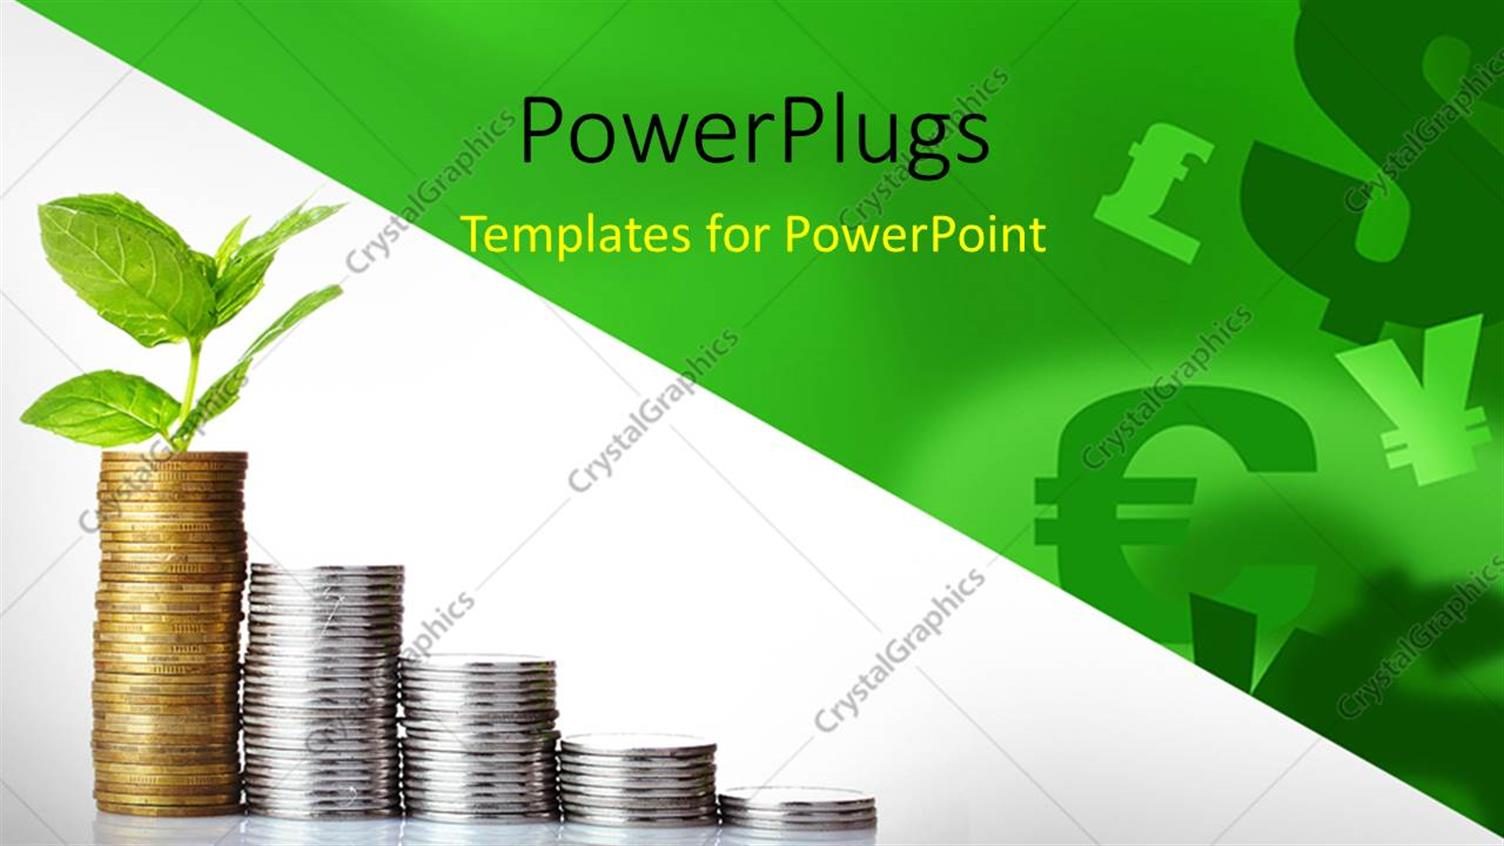 Excellent financial powerpoint template ideas documentation powerpoint templates money choice image templates example free toneelgroepblik Choice Image